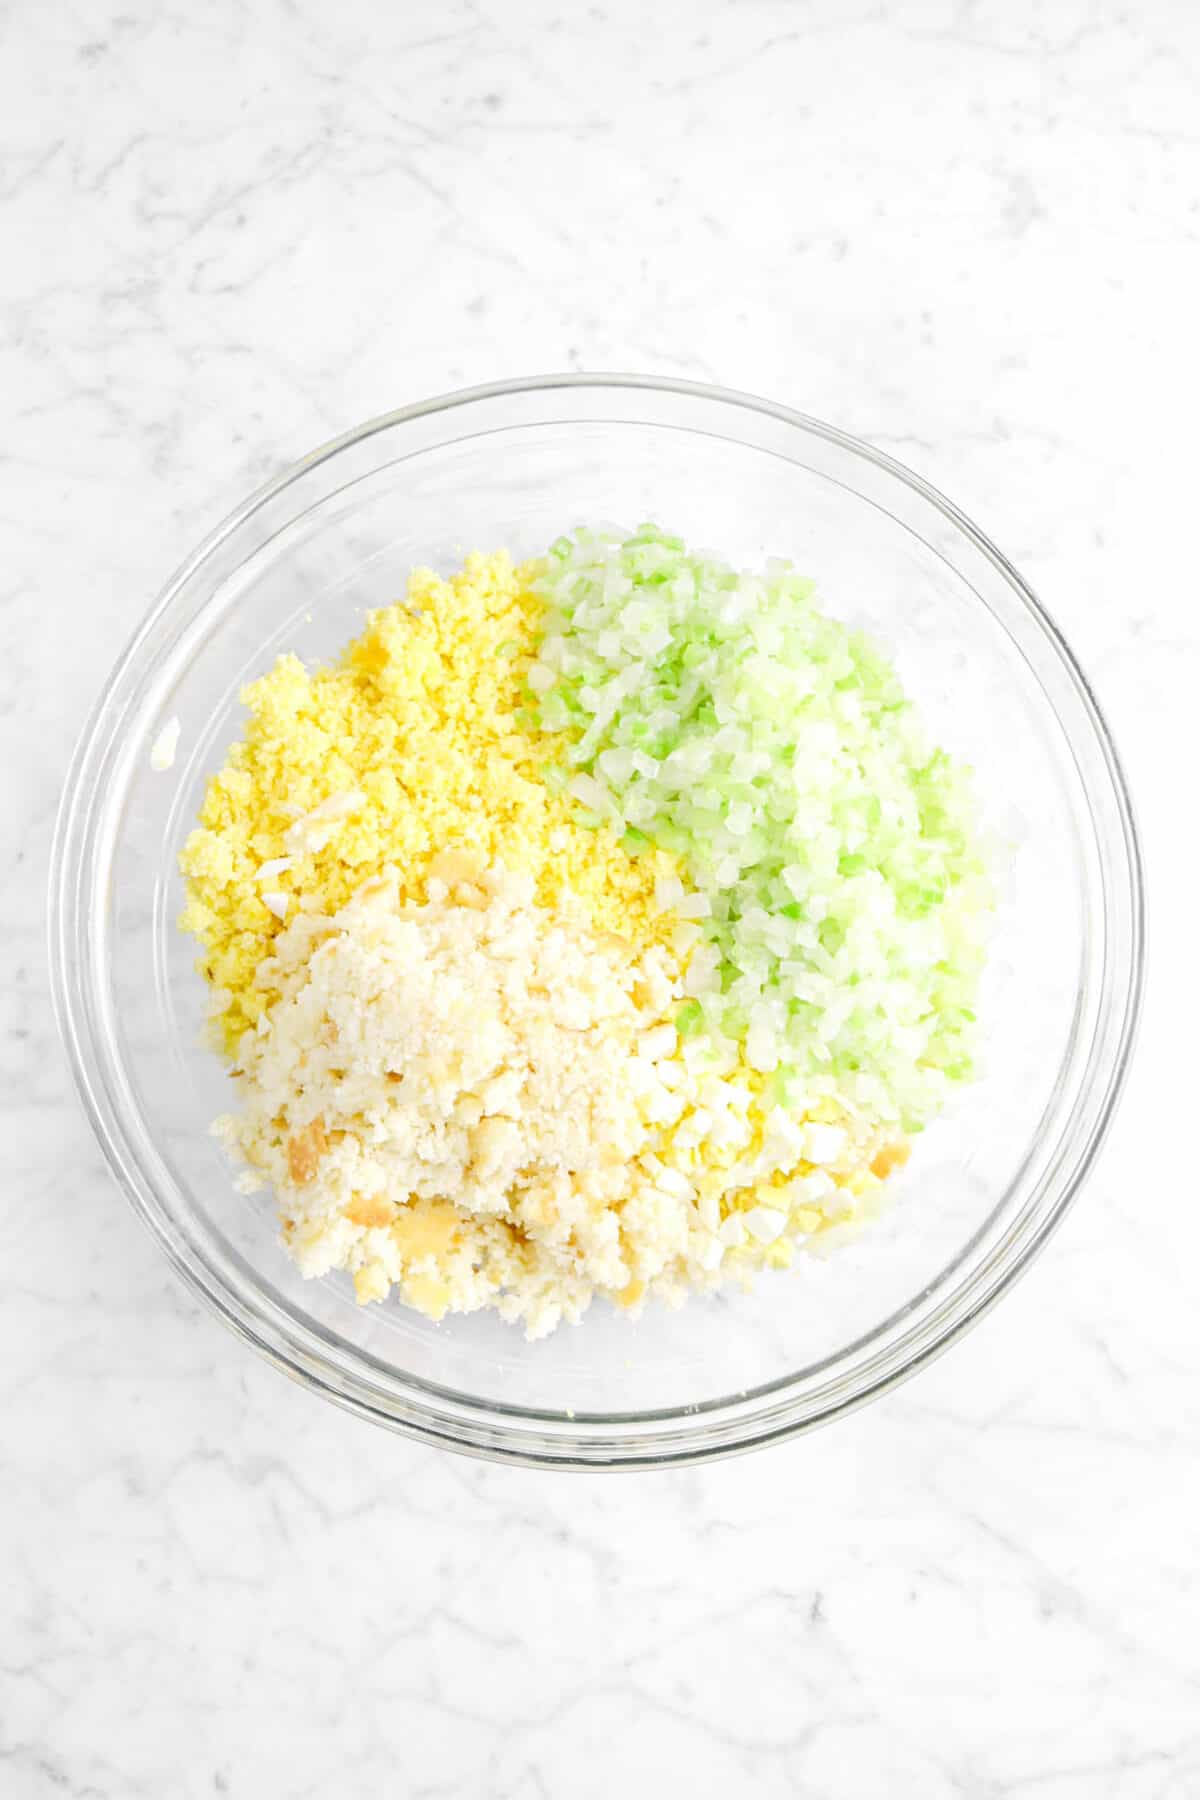 cornbread crumbles, chopped egg, biscuit crumbles, and sautéed vegetables in glass bowl